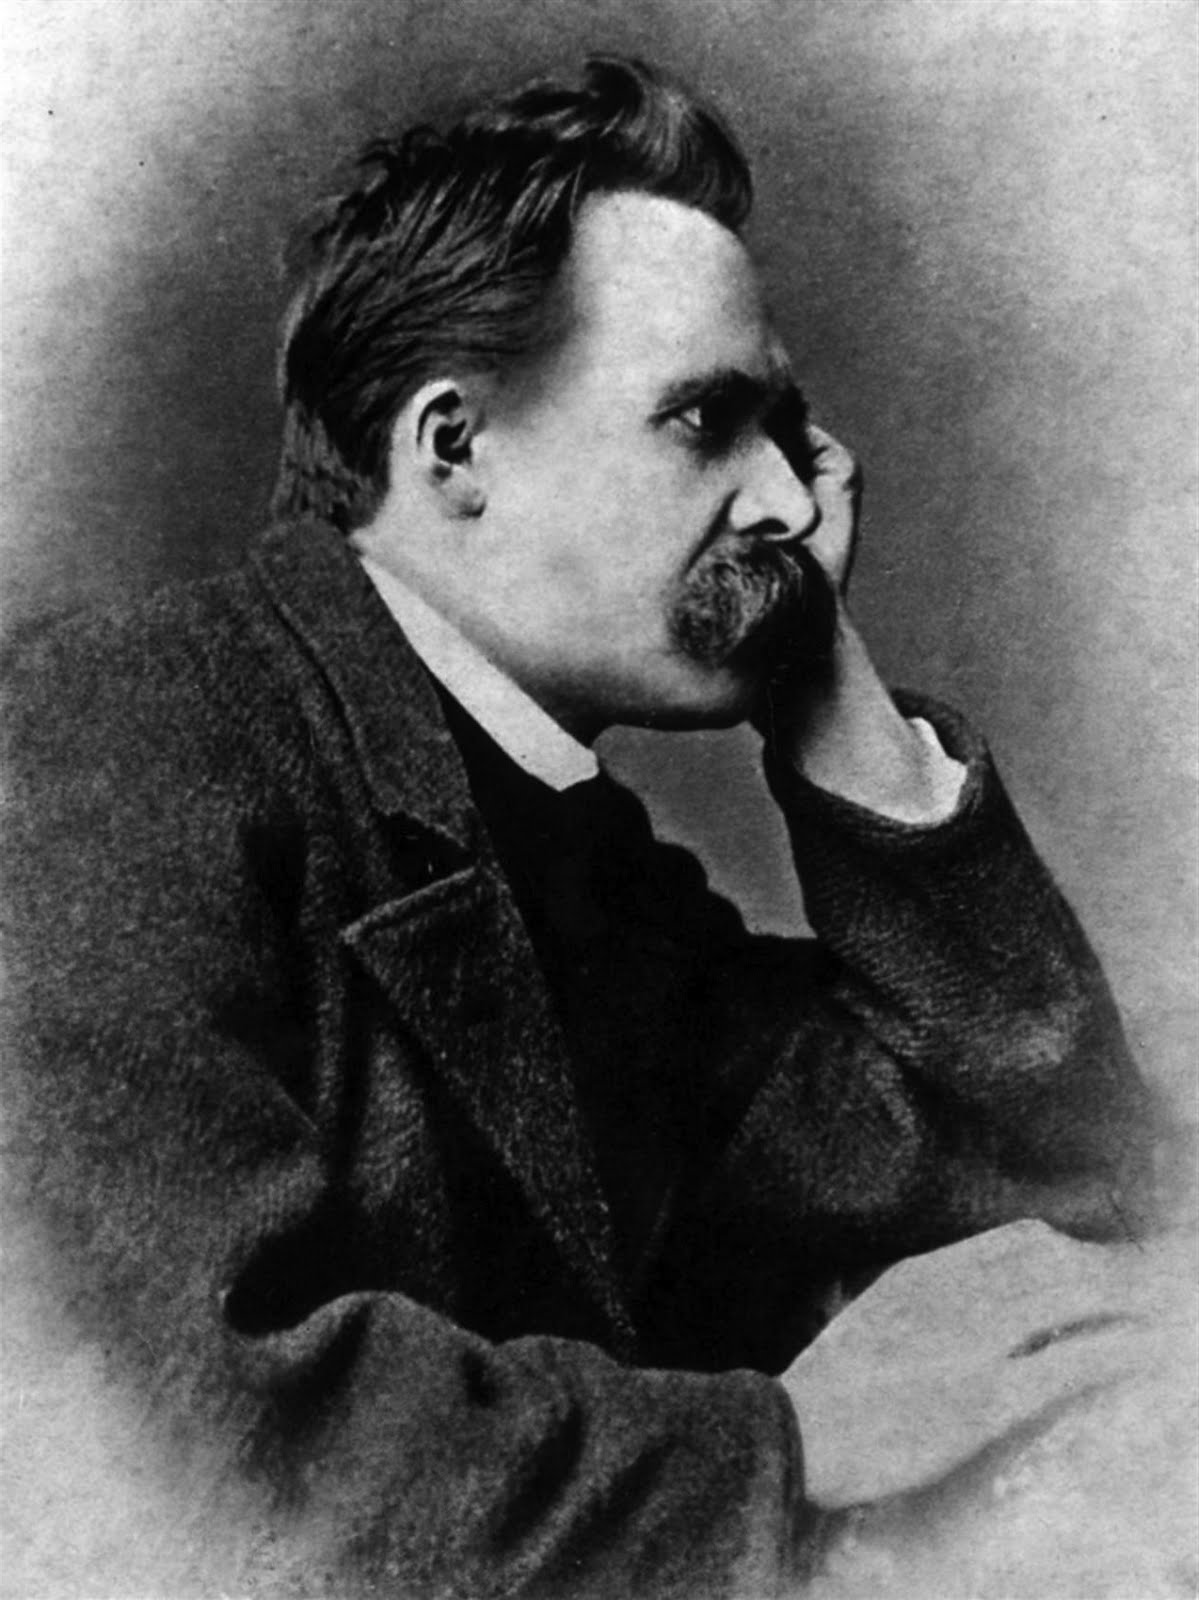 the wreckage of stars nietzsche and the ecstasy of poetry the the unstitute is proud to present the essay the wreckage of stars nietzsche and the ecstasy of poetry by dr james luchte available in english for the